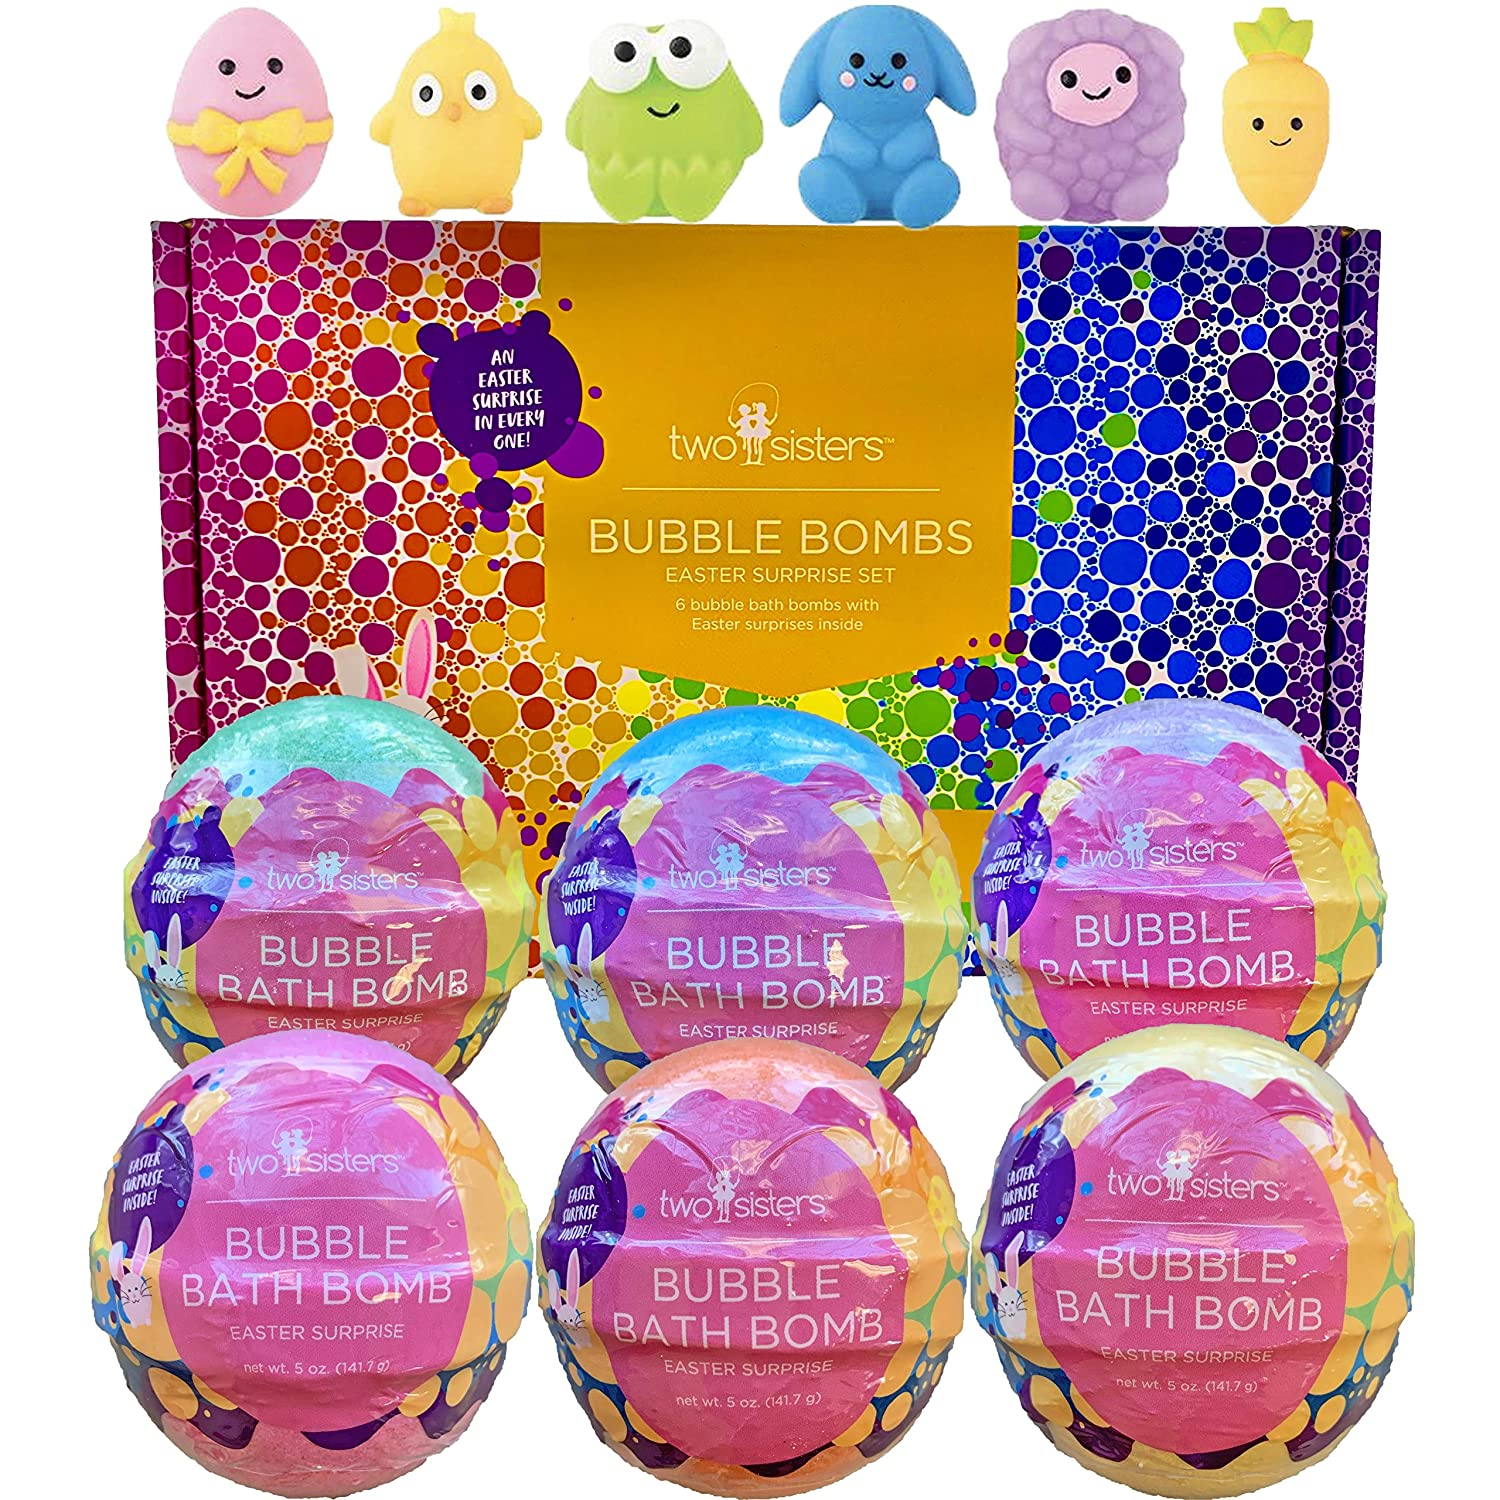 Easter Squishy Bubble Bath Bombs for Kids with Surprise Easter Squishy Toys Inside by Two Sisters. 6 Large 99% Natural Fizzies in Gift Box. Moisturizes Dry Skin. Releases Color, Scent, Bubbles